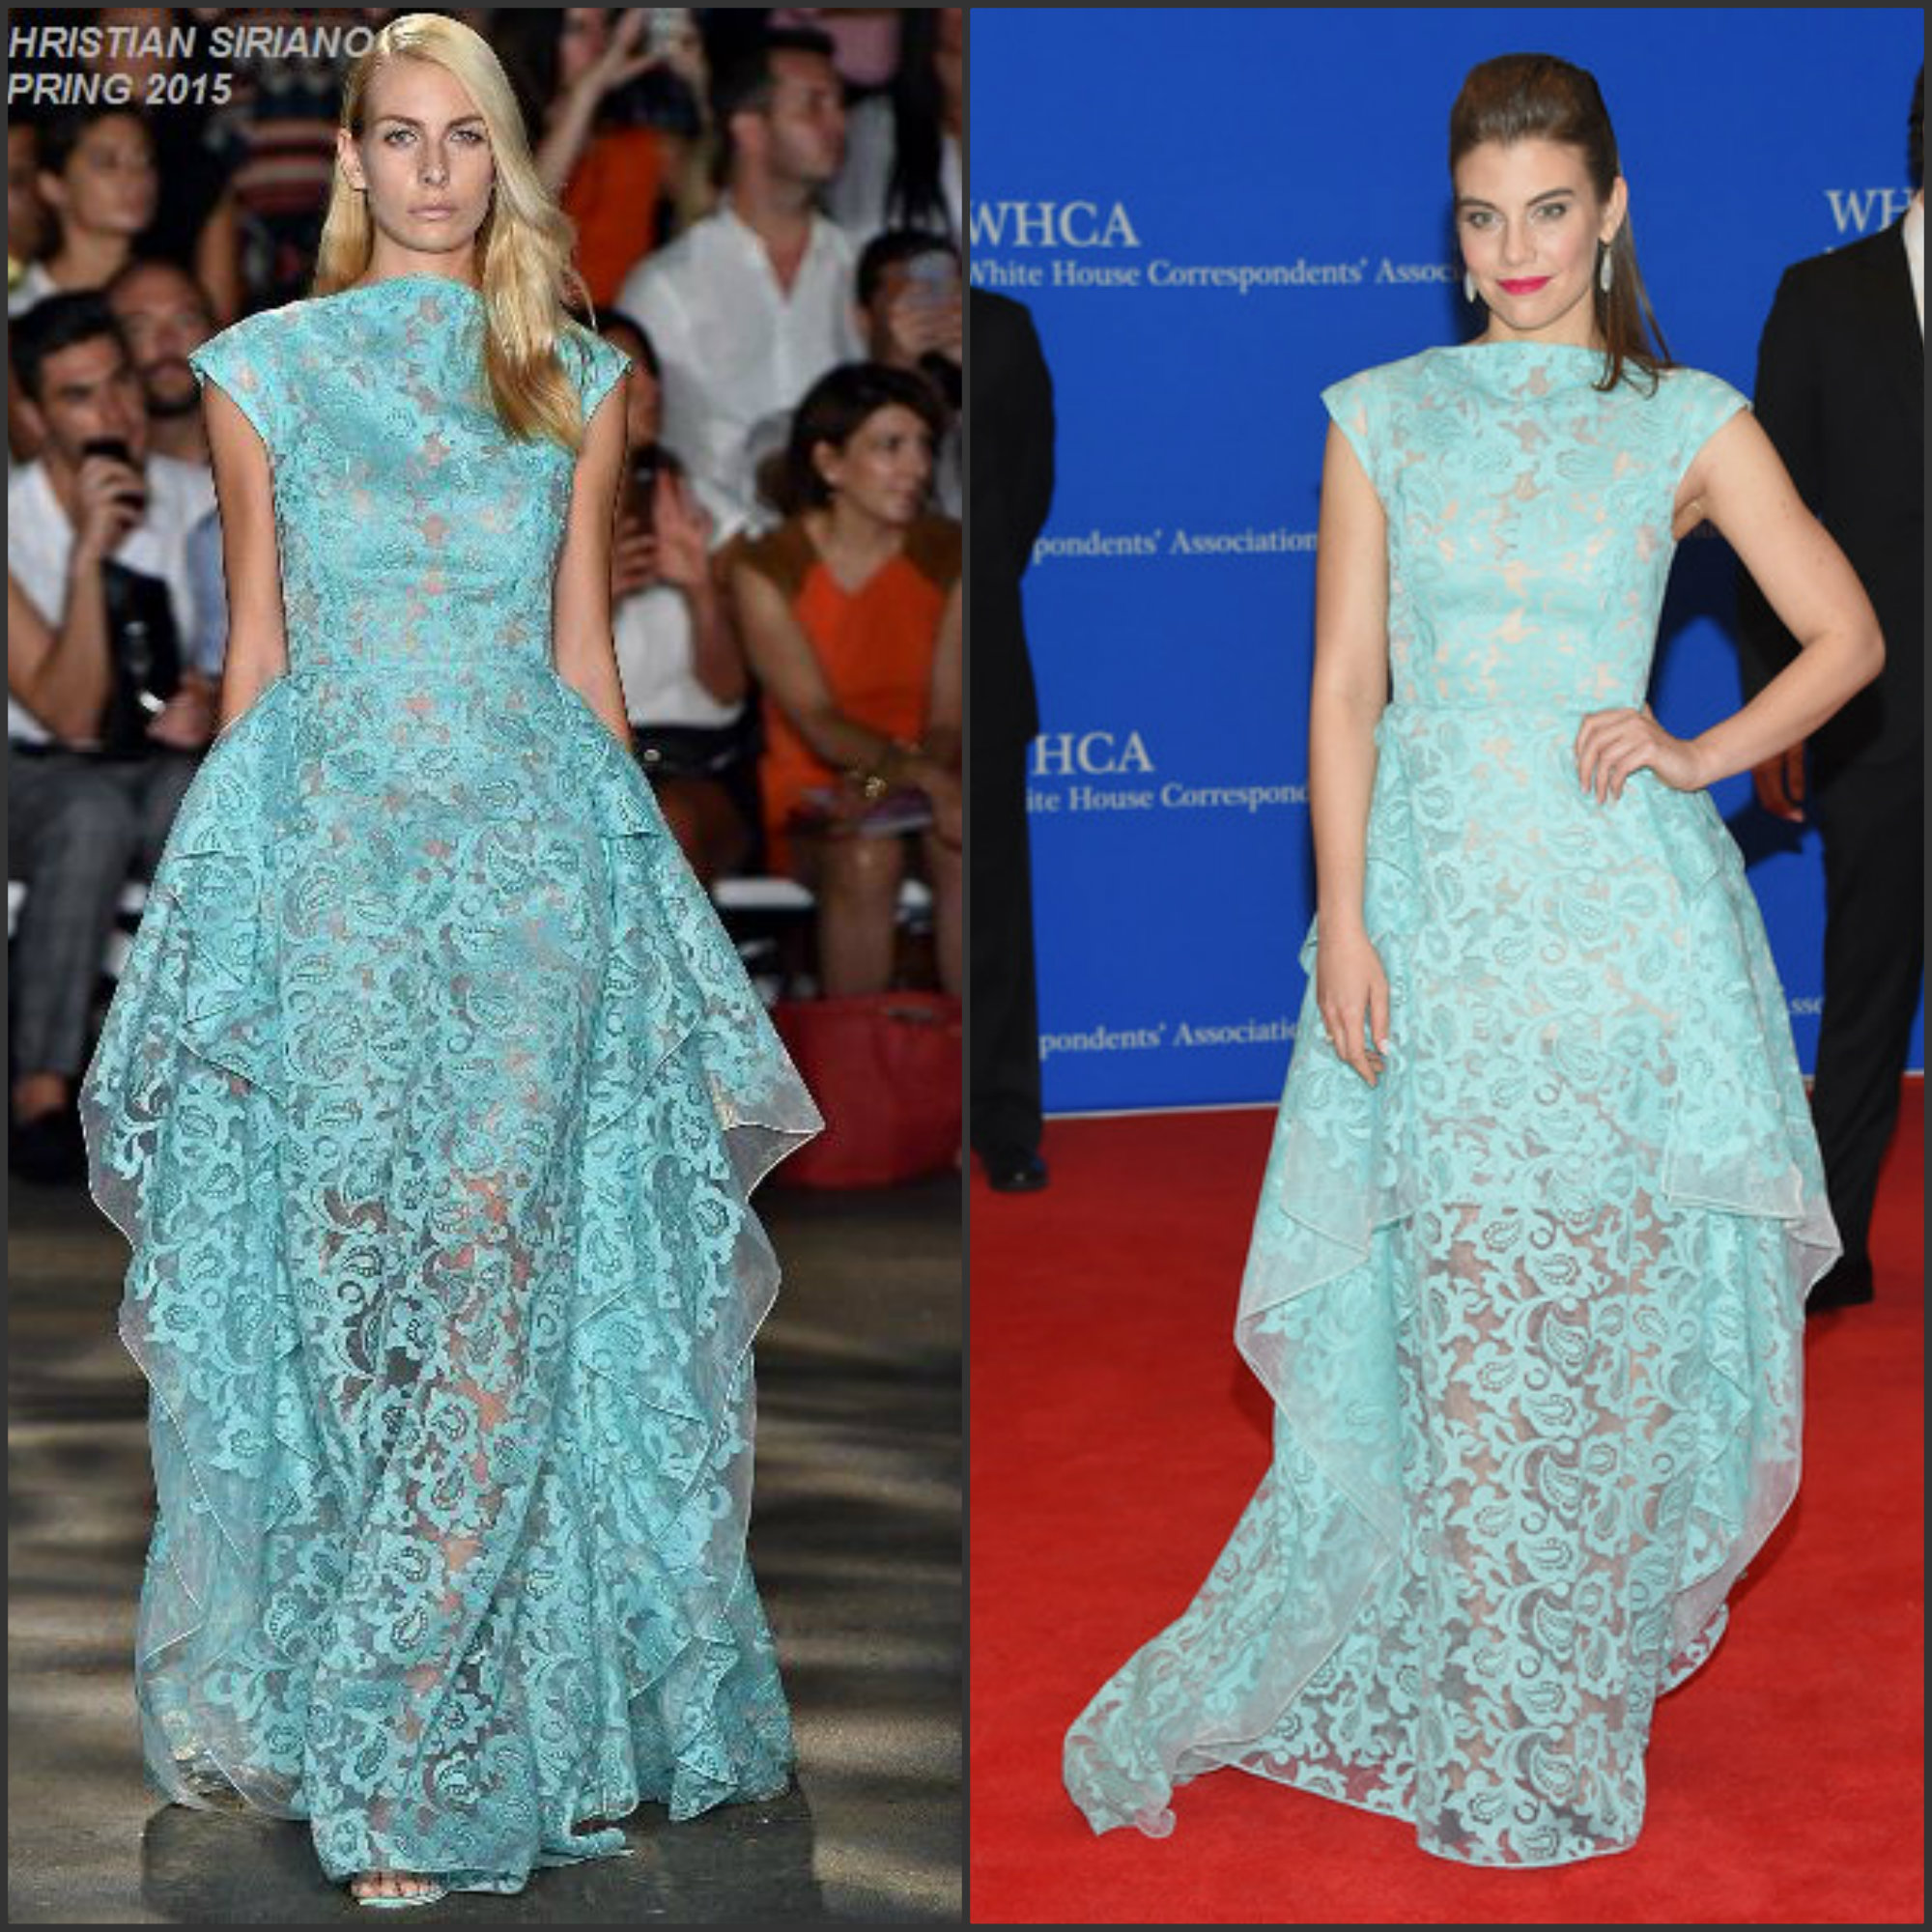 Lauren-Cohan-in-Christian-Siriano-at-the-101st-White-House-Correspondents-Association-Dinner